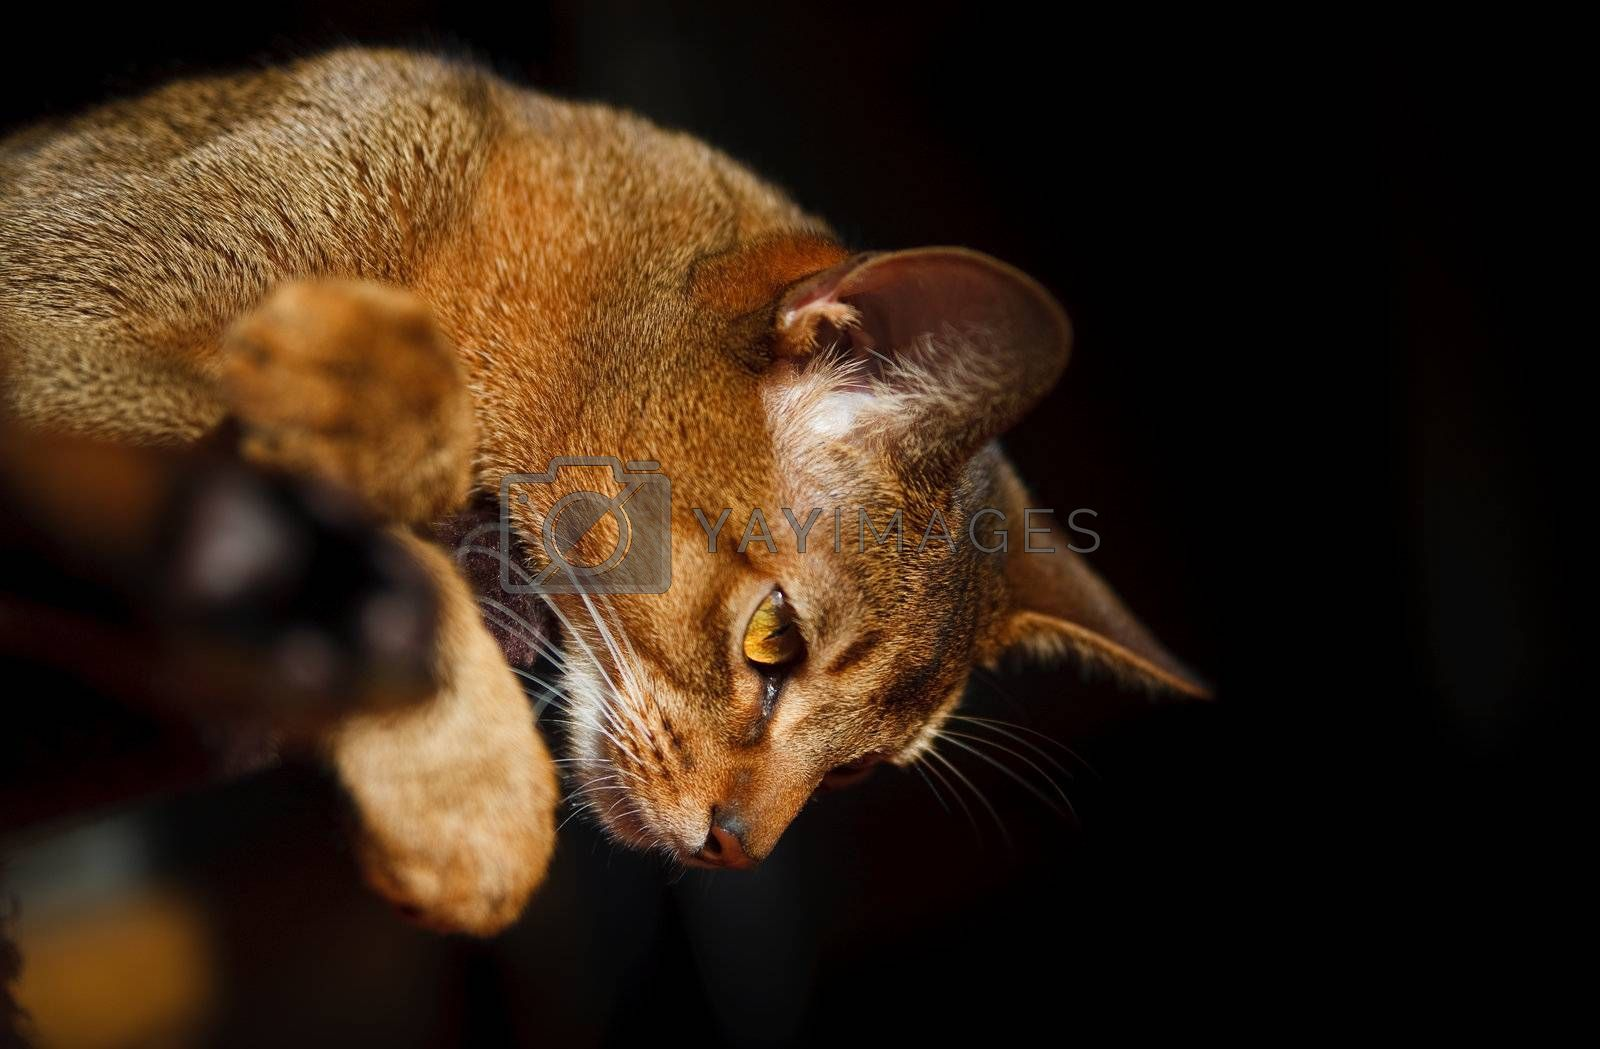 Royalty free image of Abyssinian cat by anobis